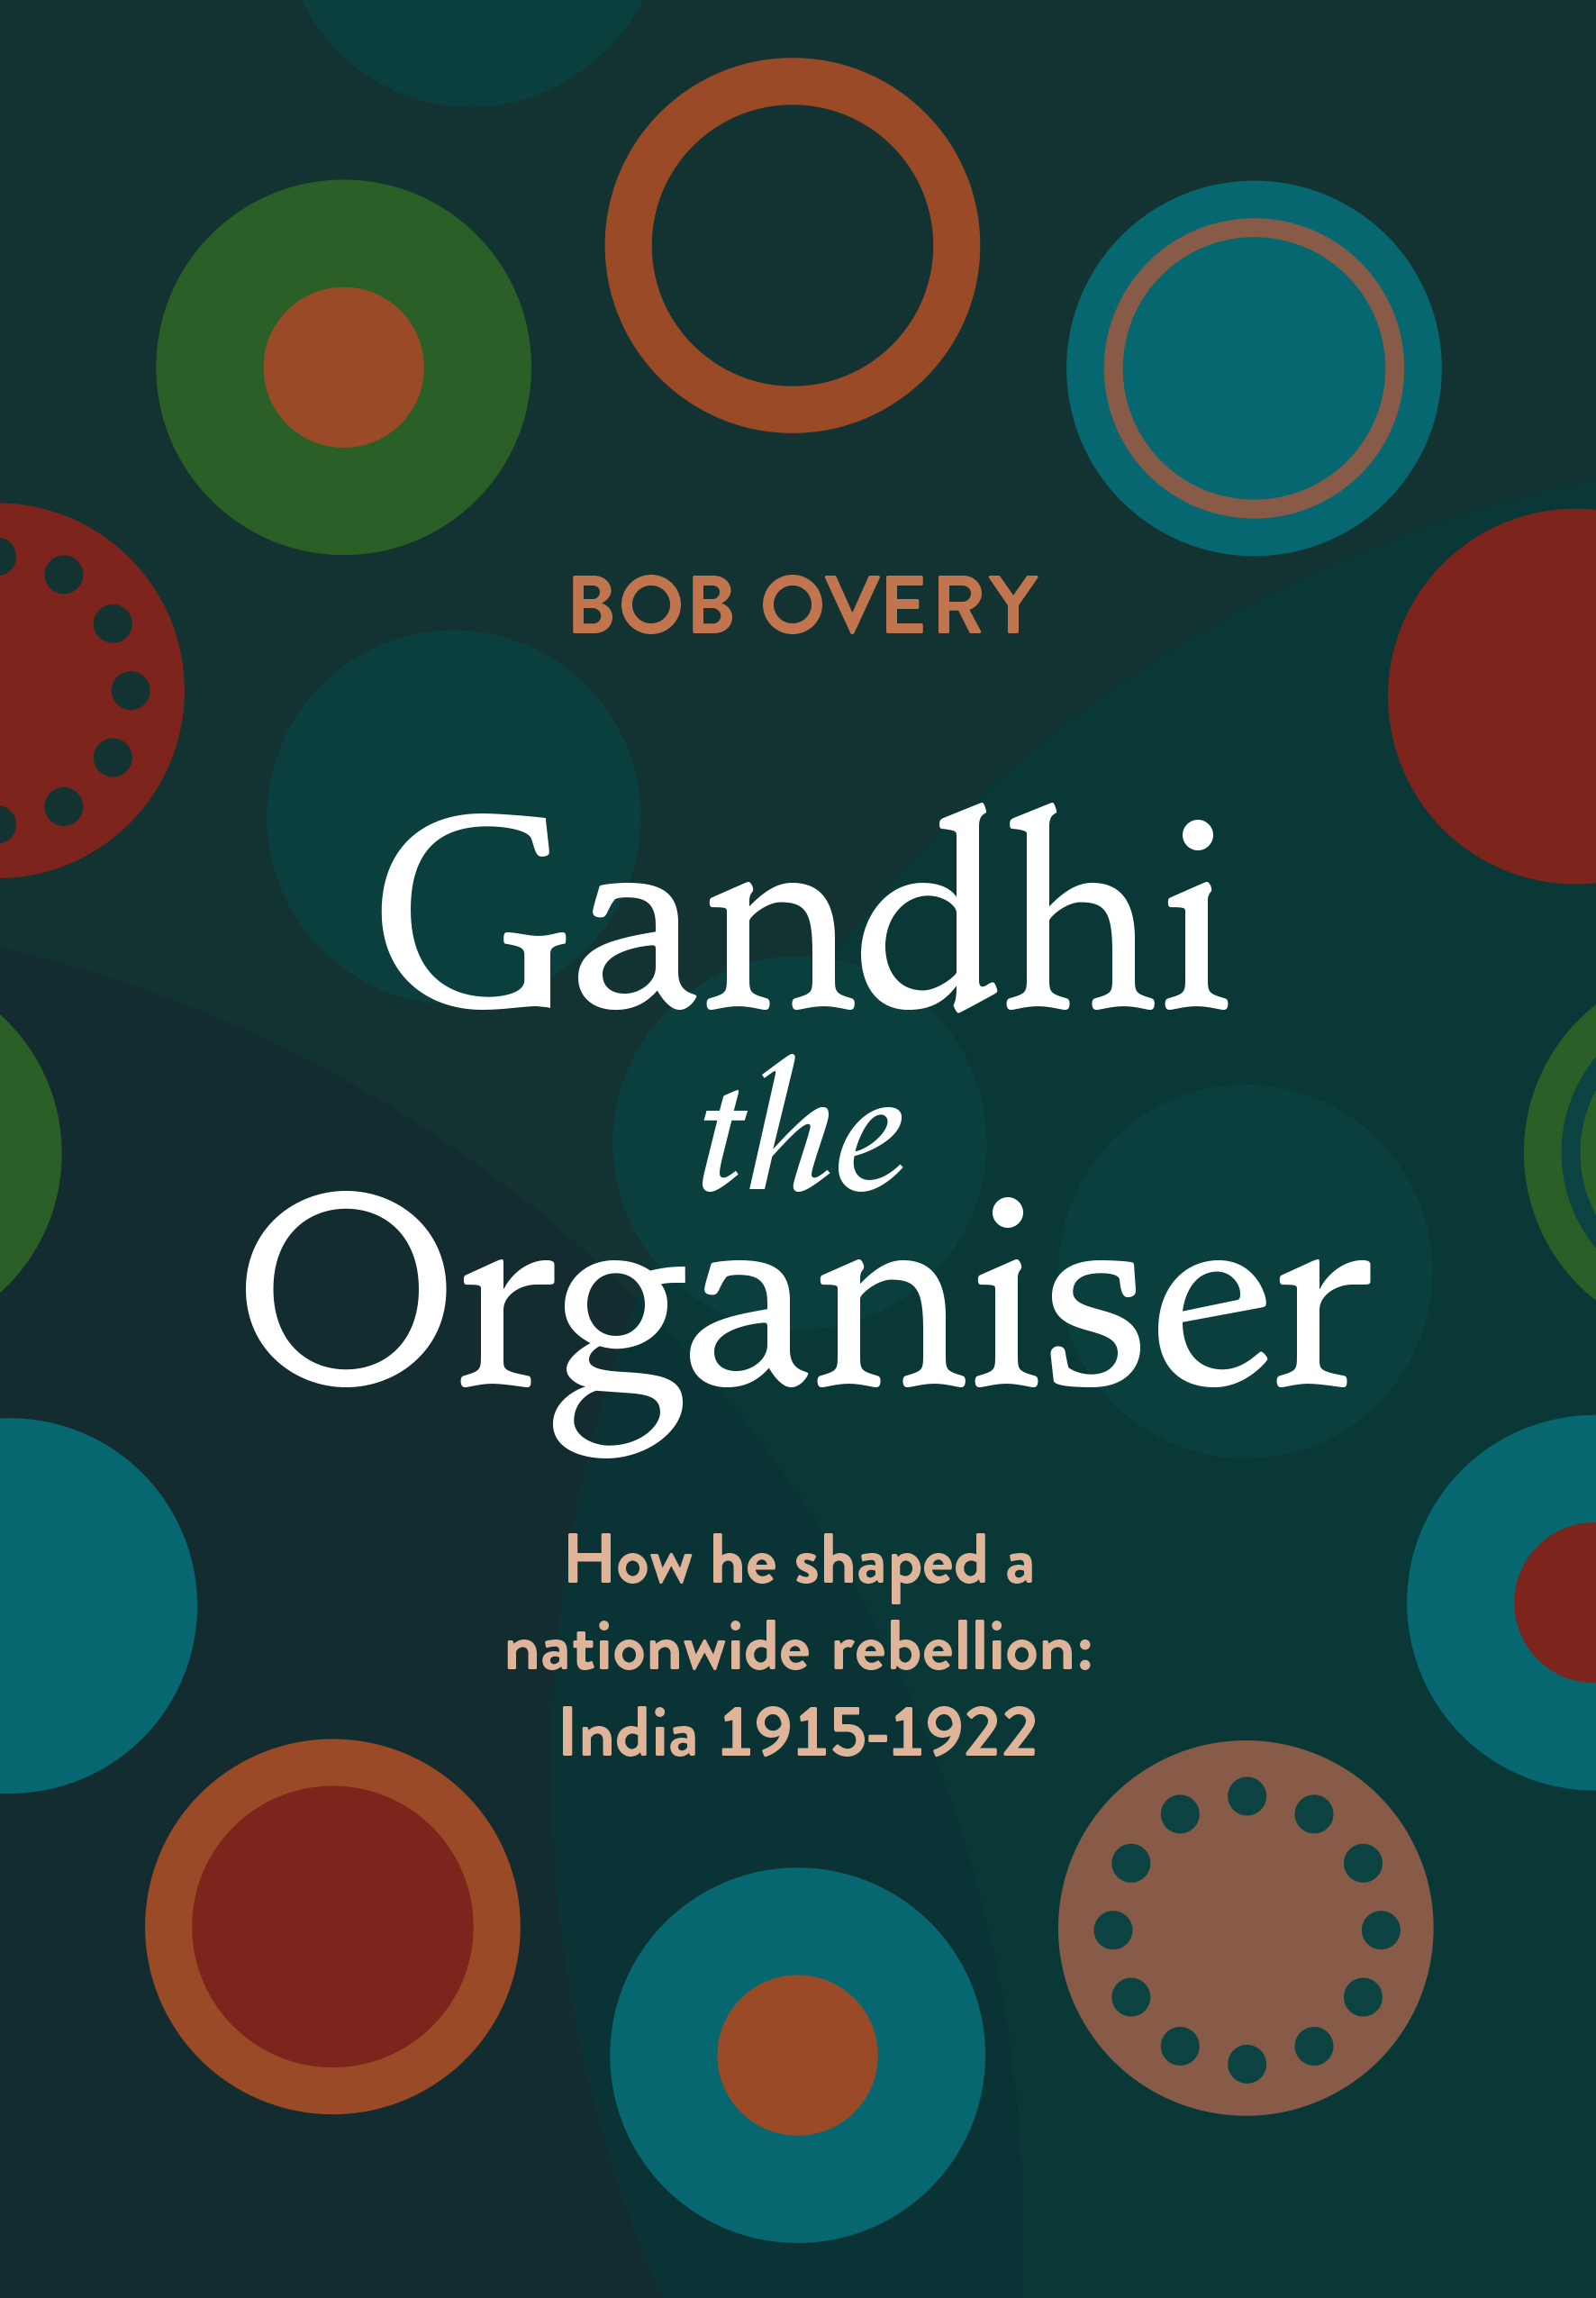 Gandhi the Organiser. How he shaped a nationwide rebellion: India 1915-1922